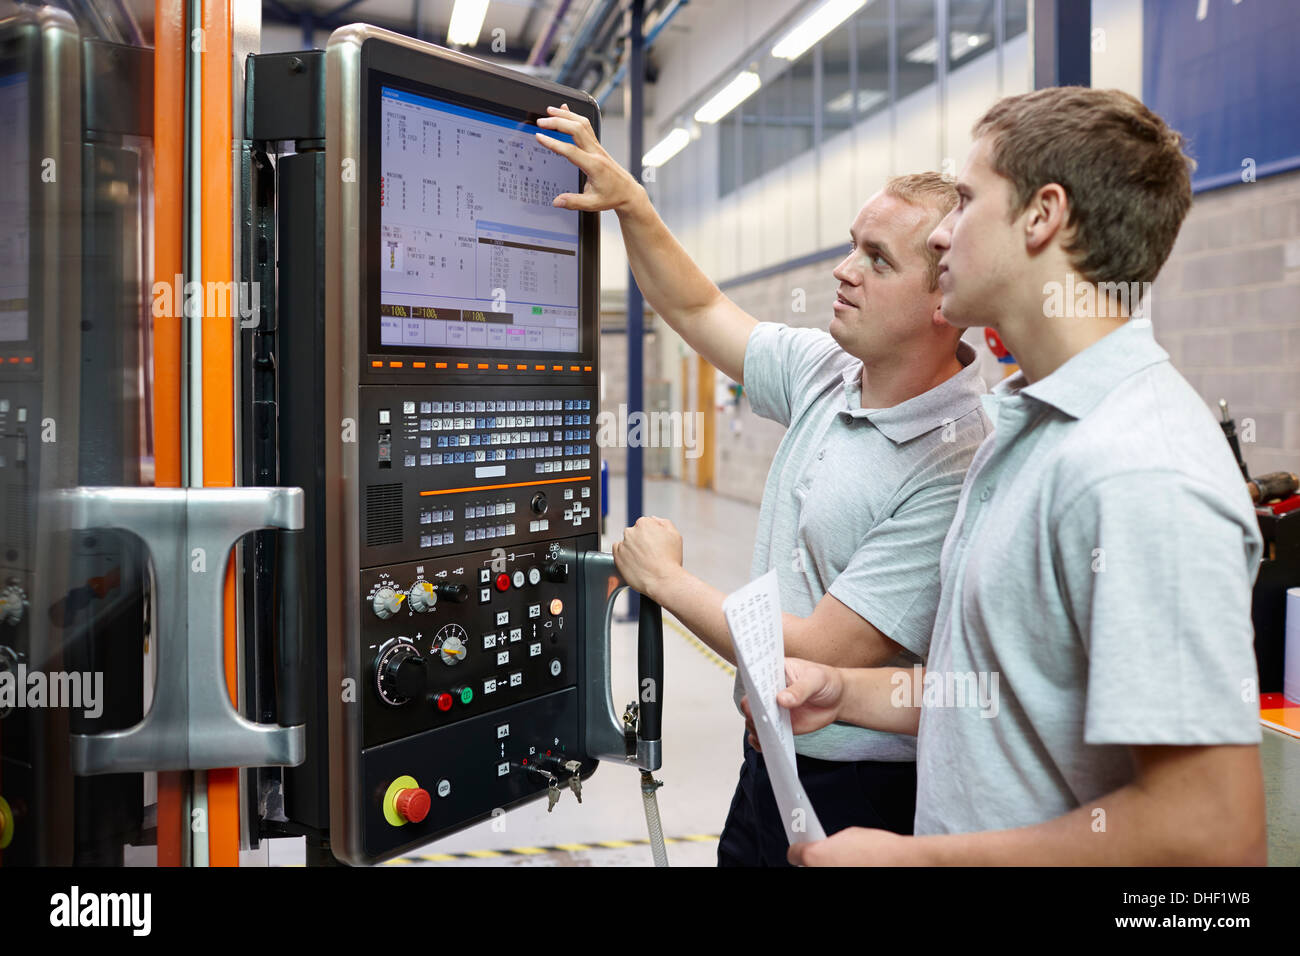 Workers looking at computer monitor in engineering factory - Stock Image